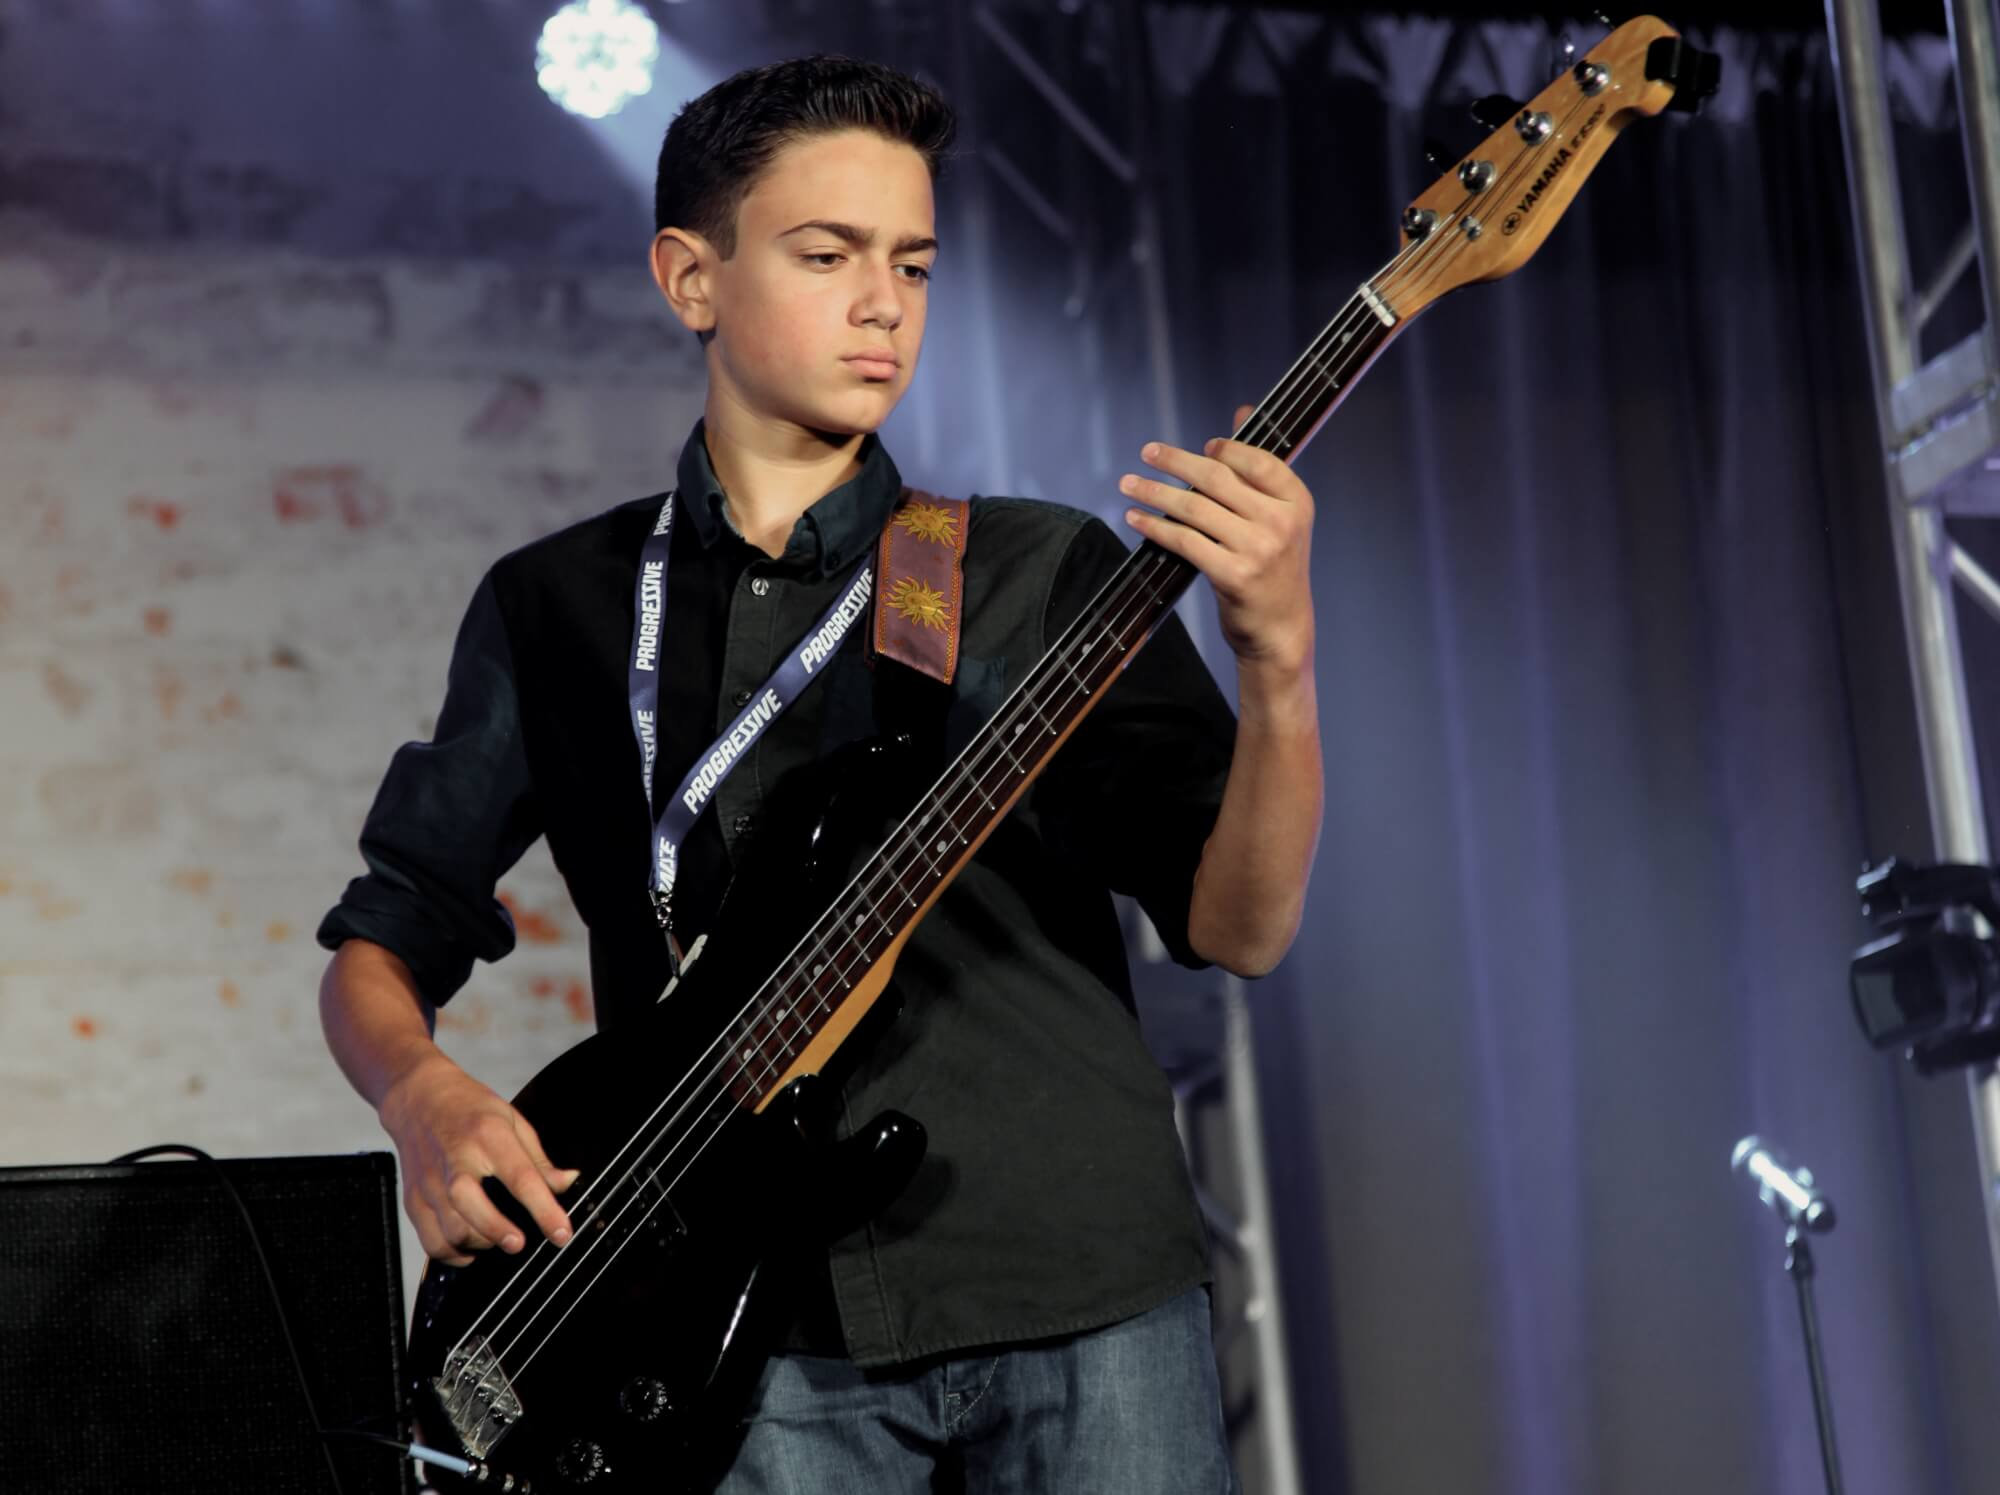 One of our students plays the bass.